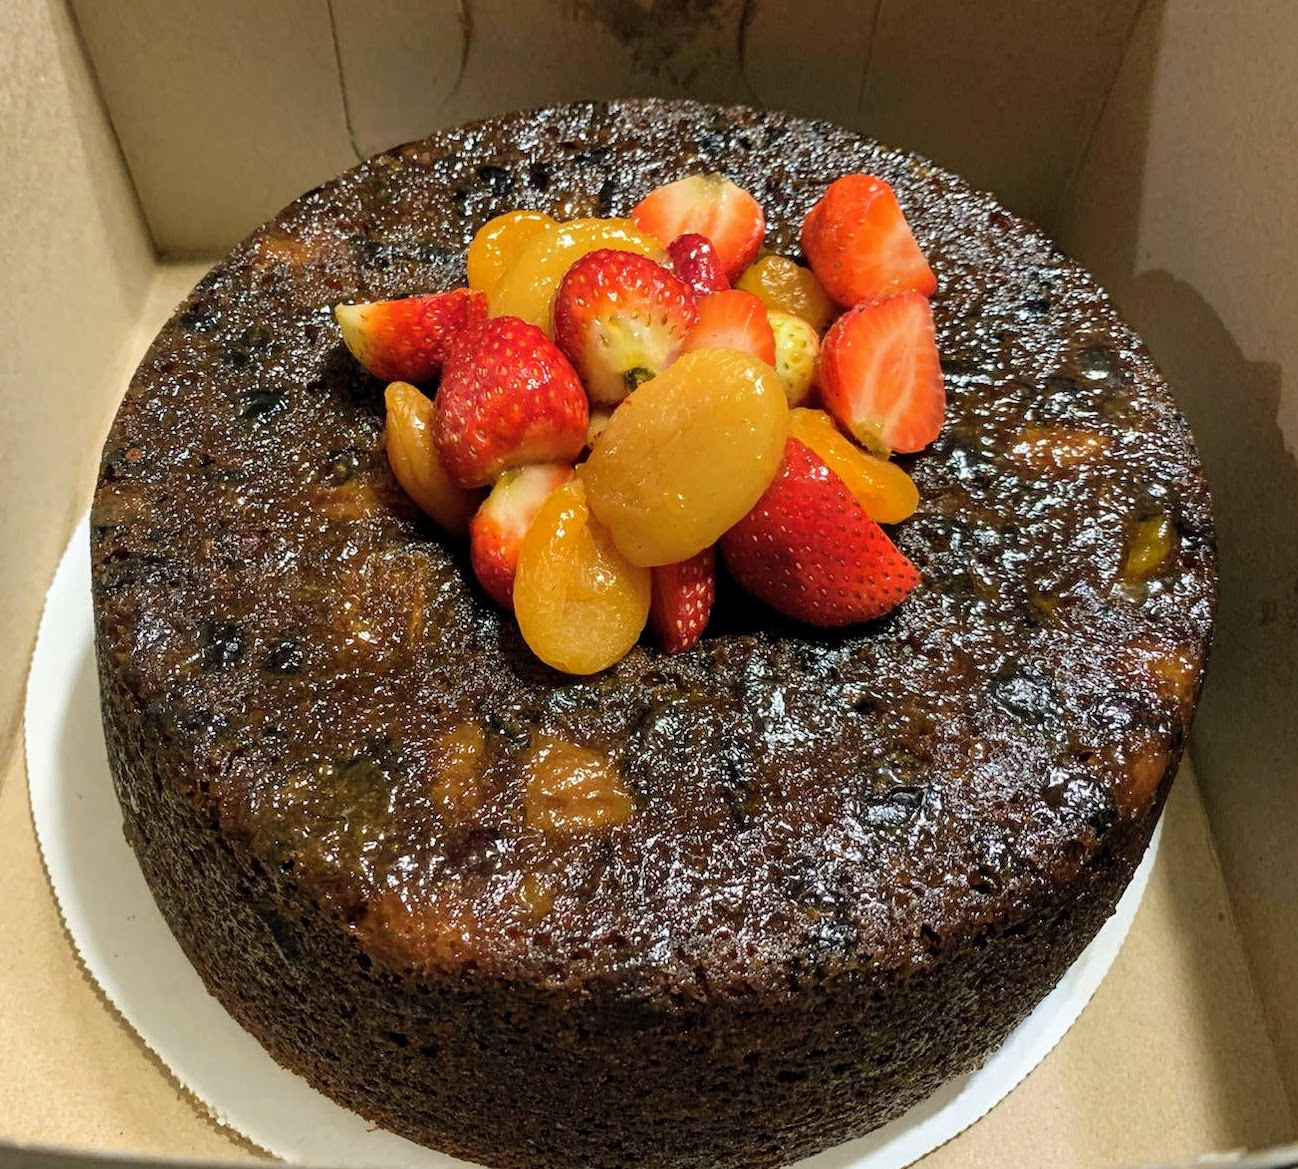 Dark fruitcake with strawberries and apricots on top